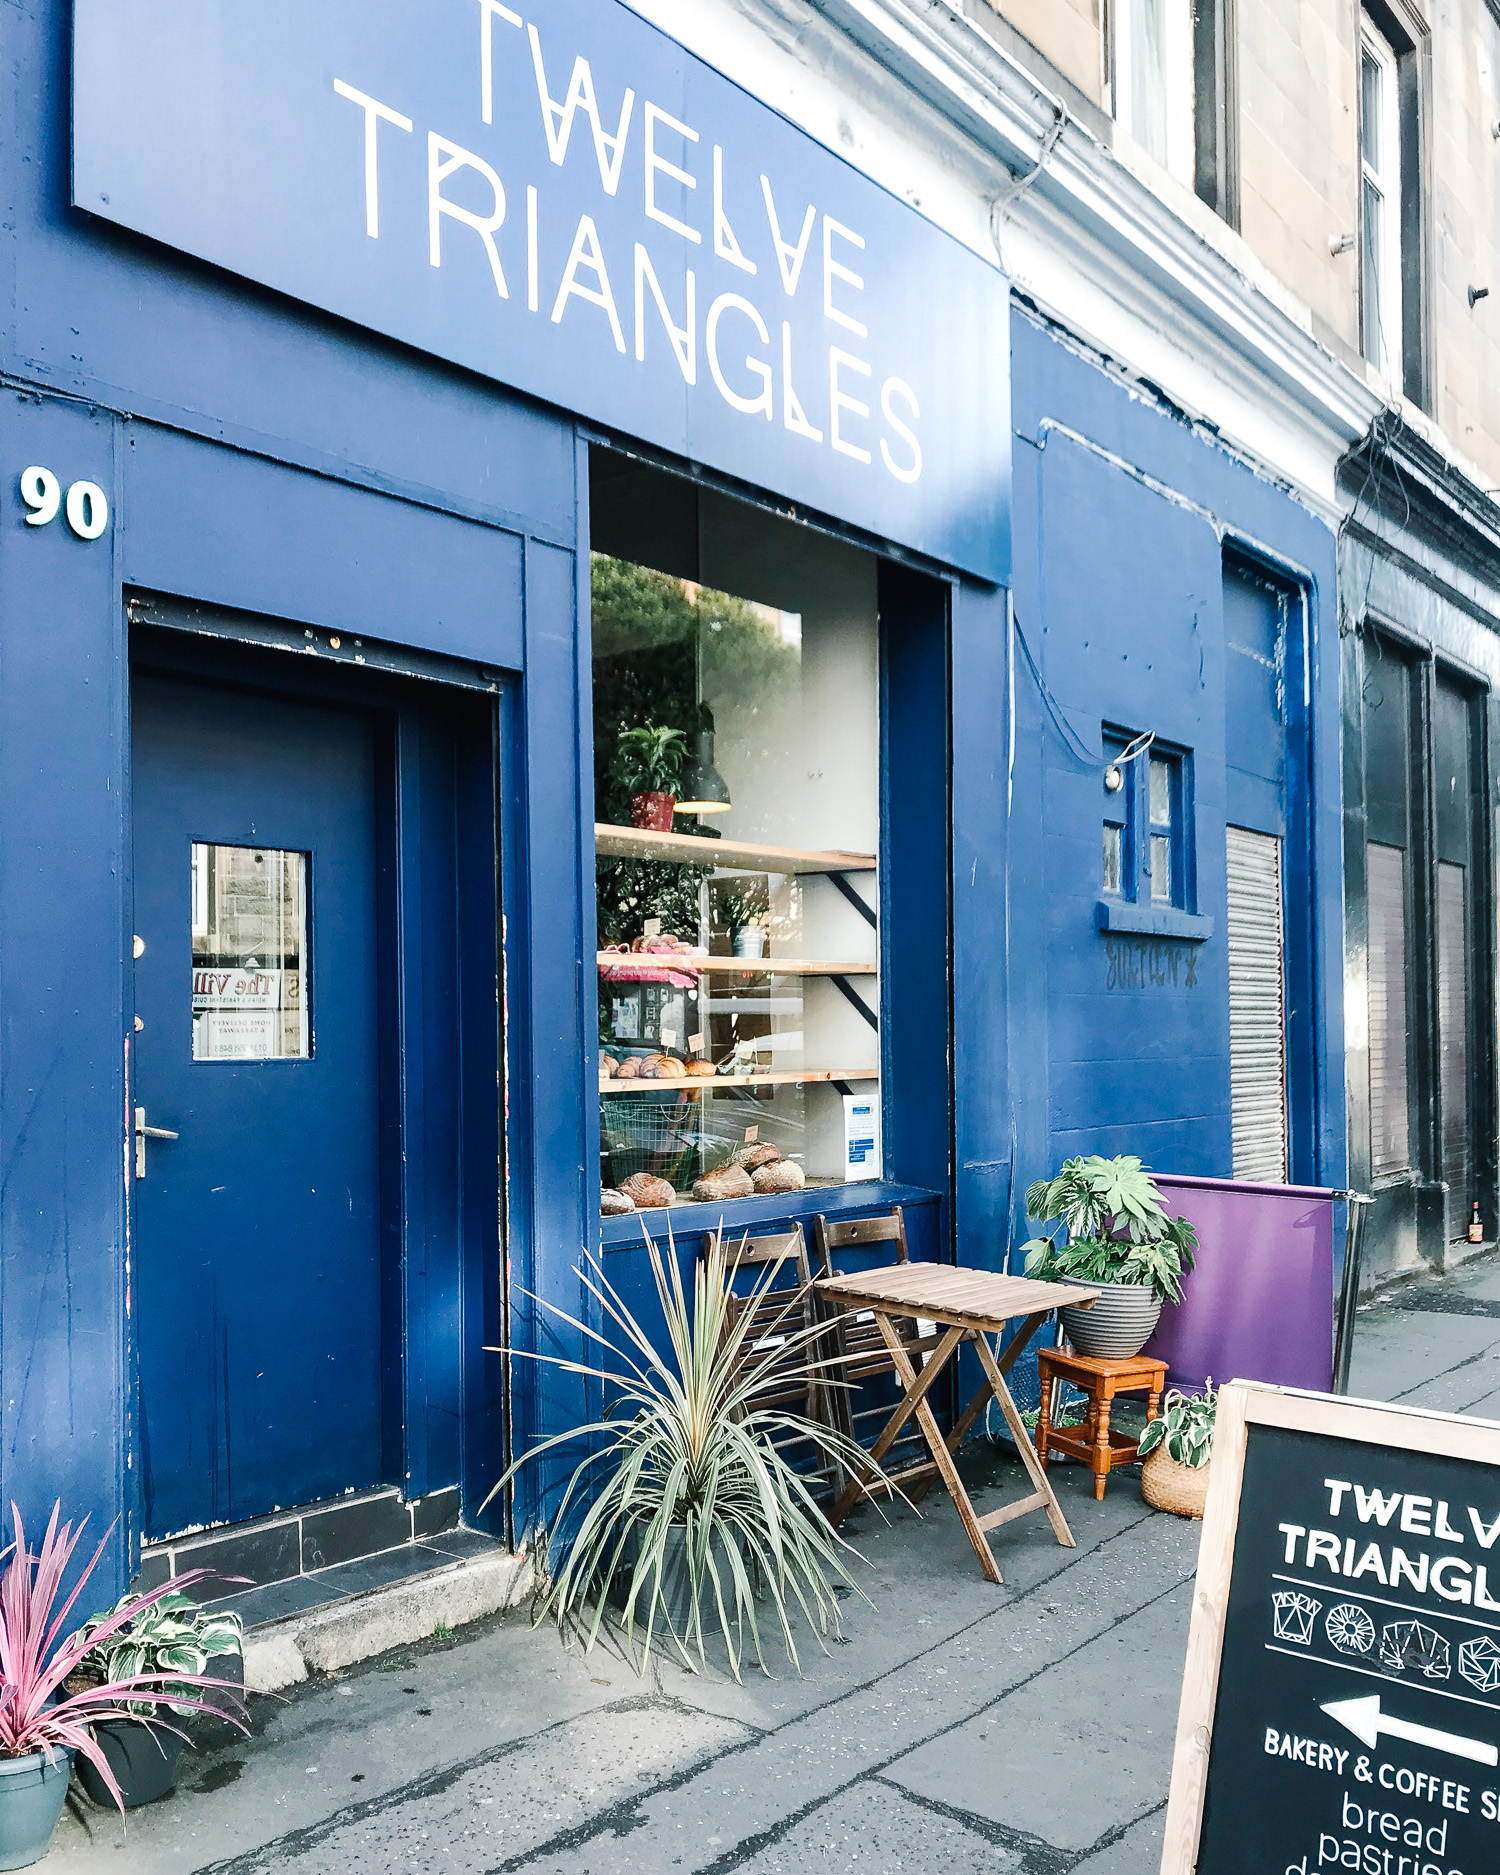 Twelve Triangles bakery Edinburgh